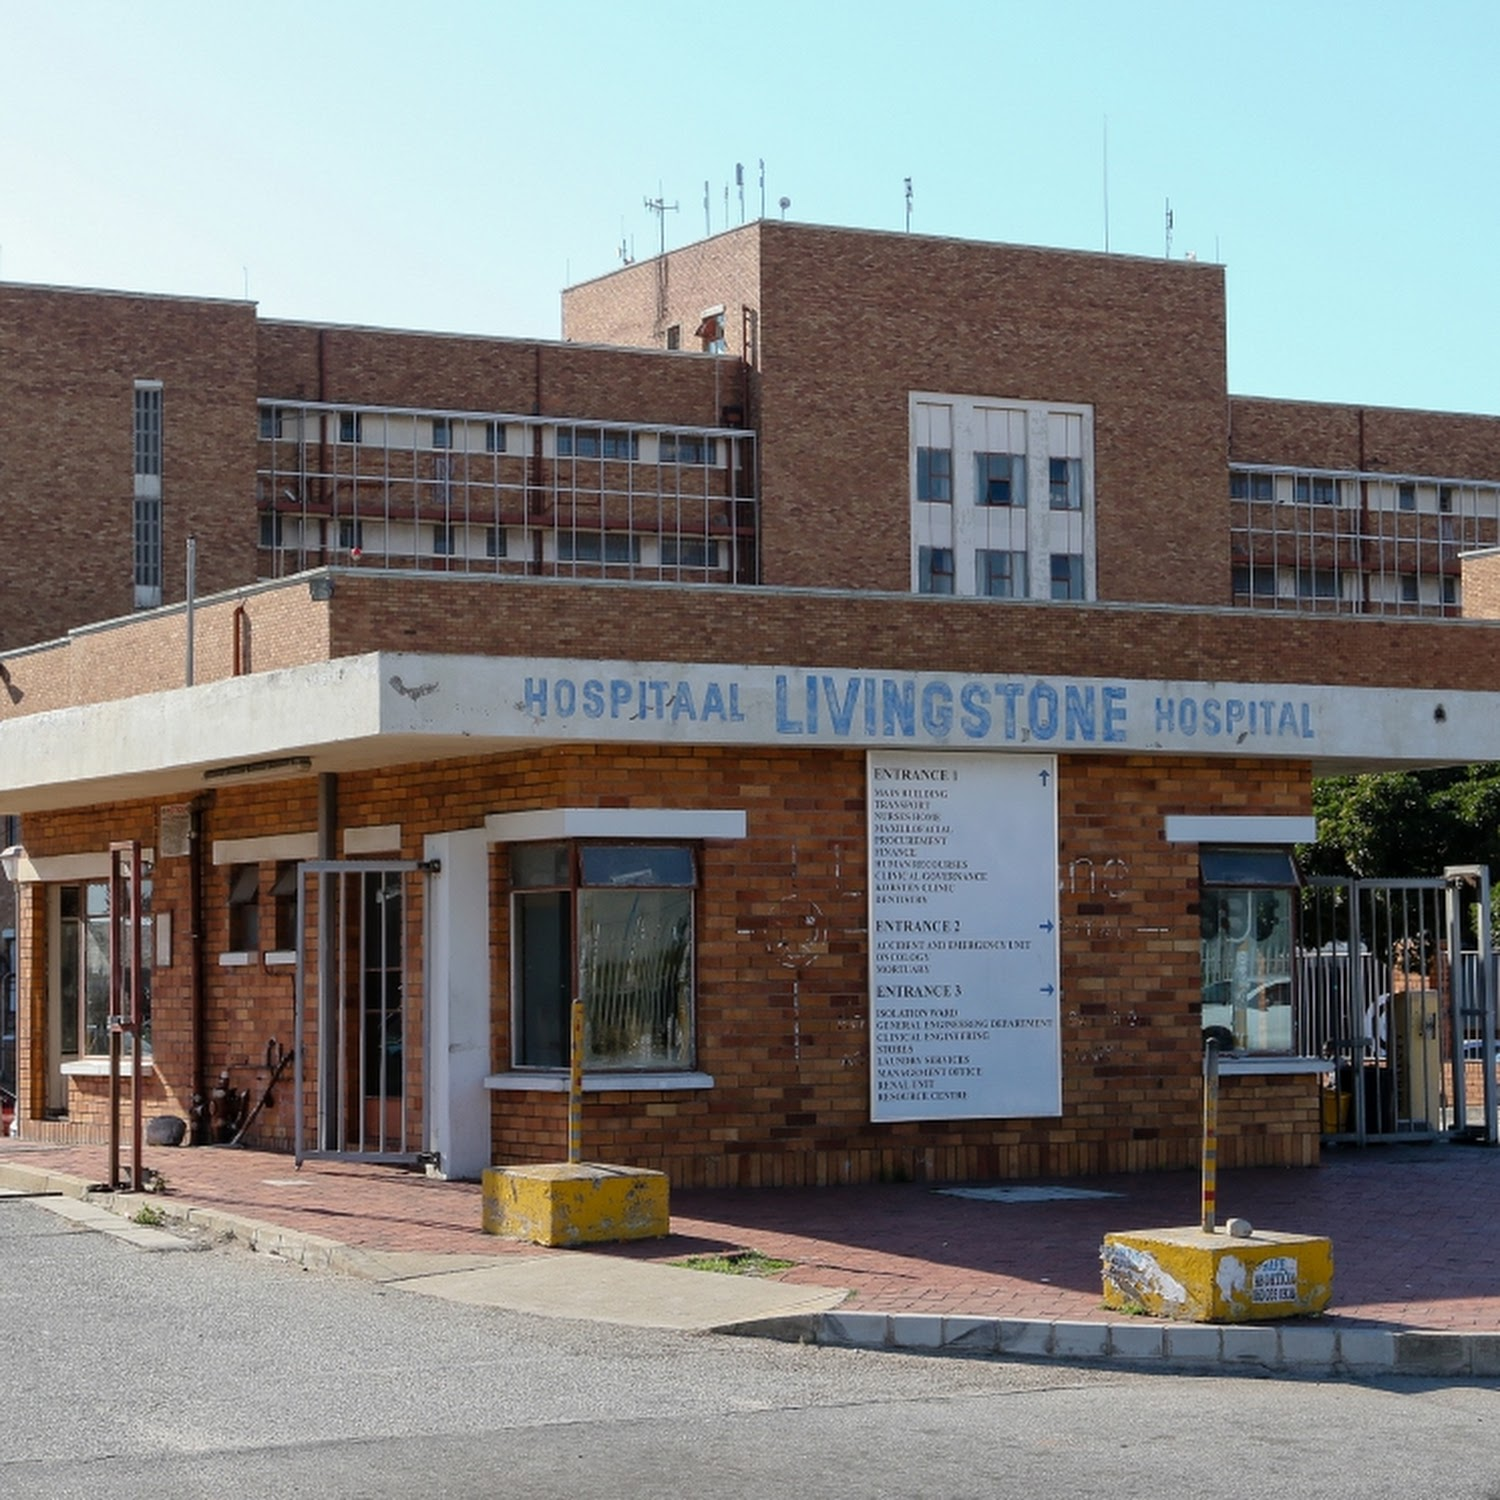 Dramatically reduced budget leaves Livingstone Hospital hamstrung